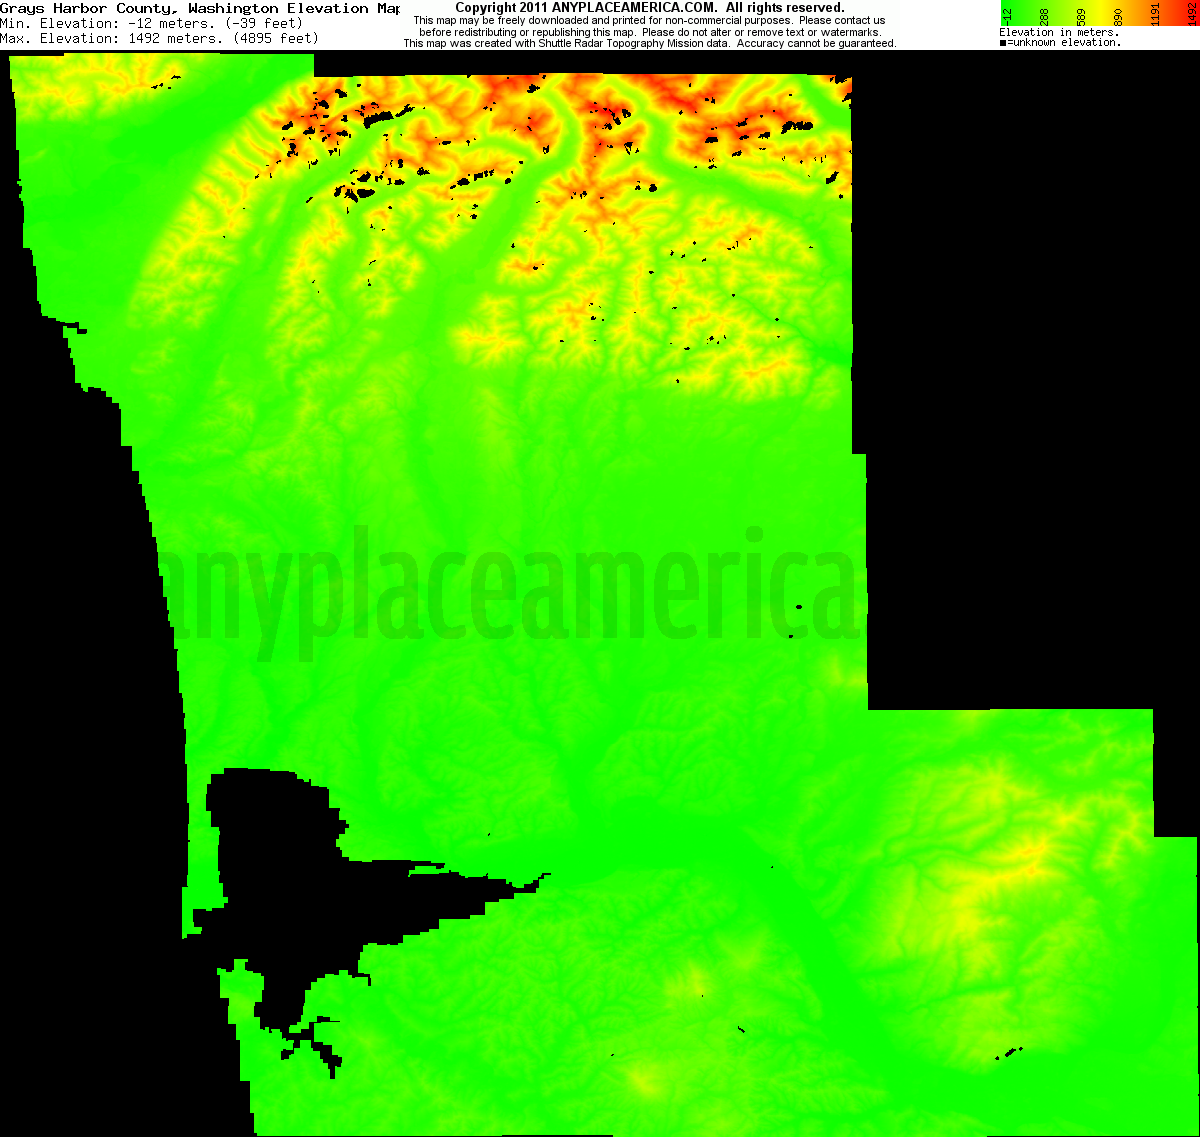 Grays Harbor, Washington elevation map